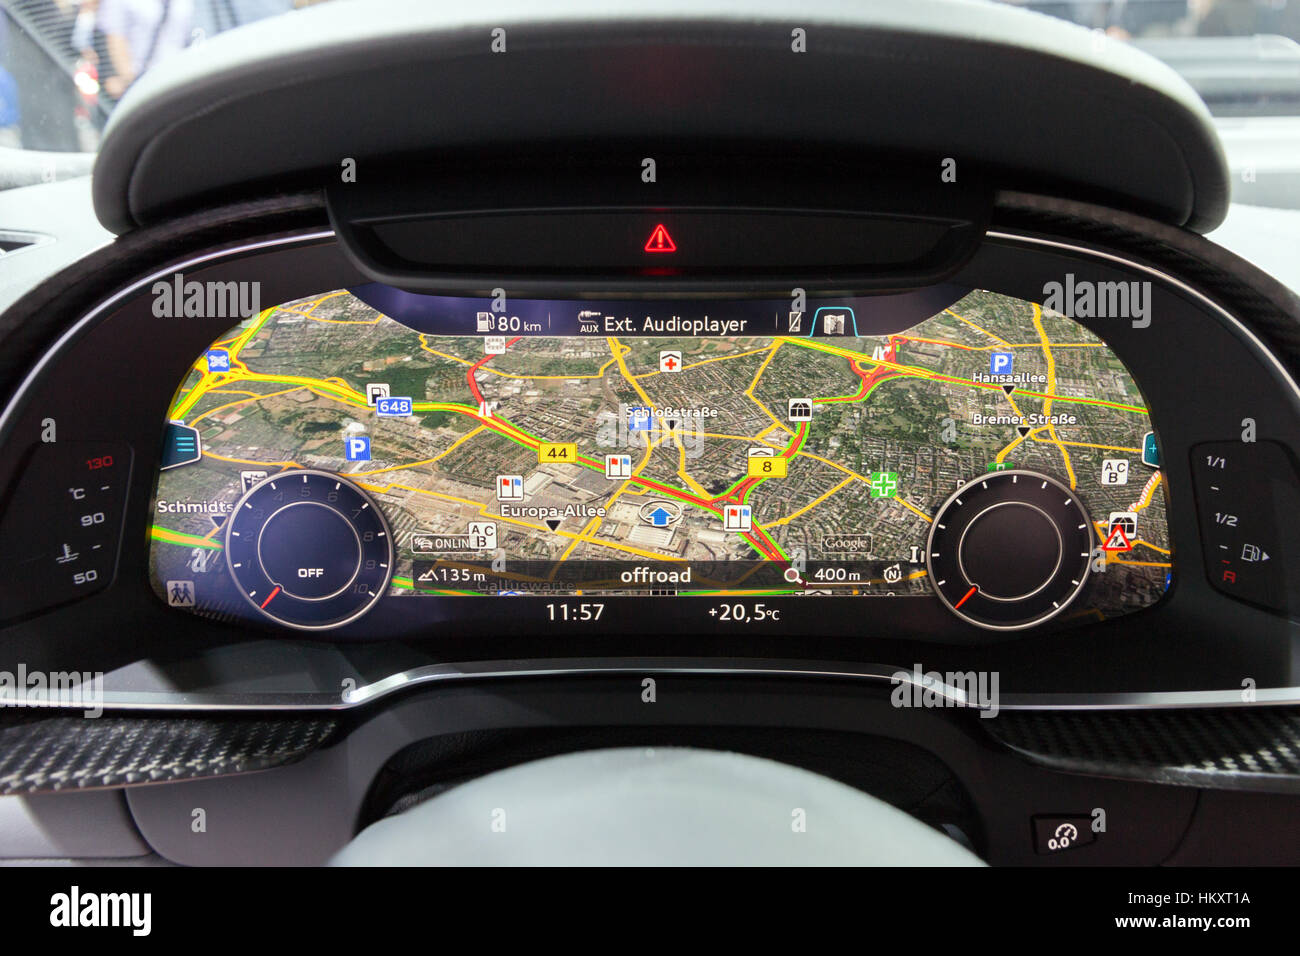 FRANKFURT, GERMANY - SEP 16, 2015: Dashboard close up of the Audi R8 V10 Plus presented at the IAA 2015. - Stock Image